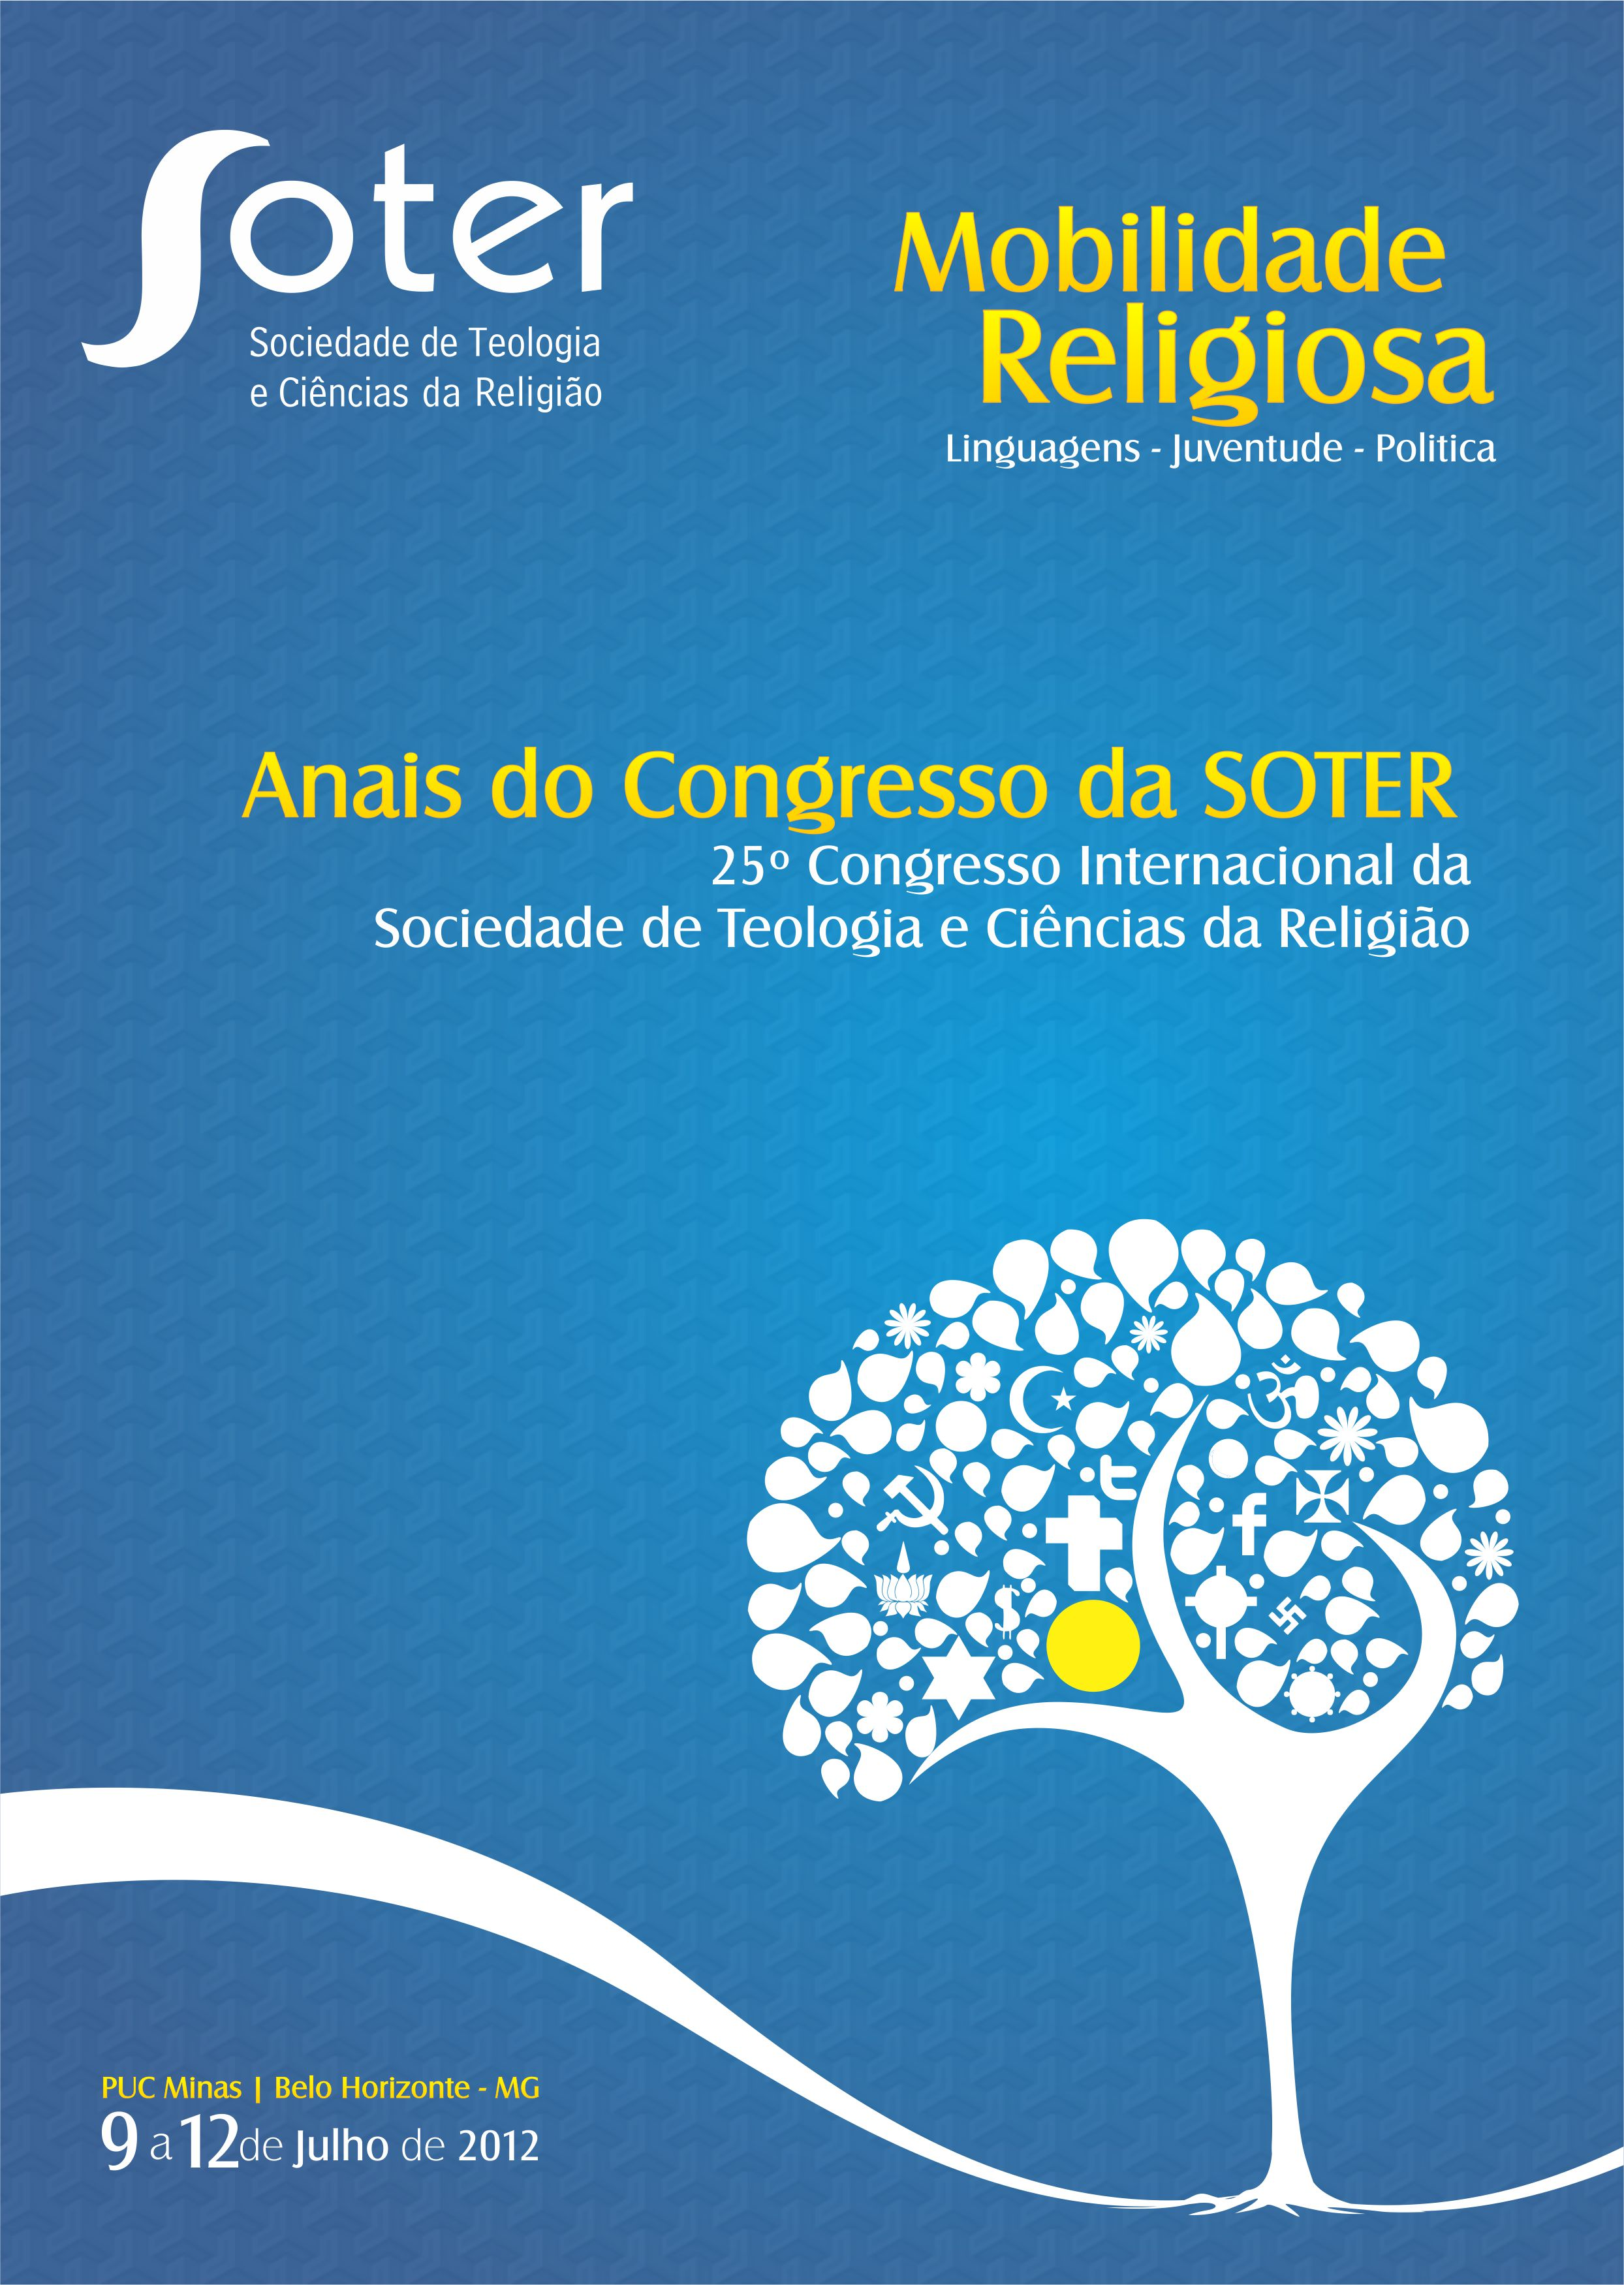 Anais do 25º Congresso Internacional da SOTER - 2012